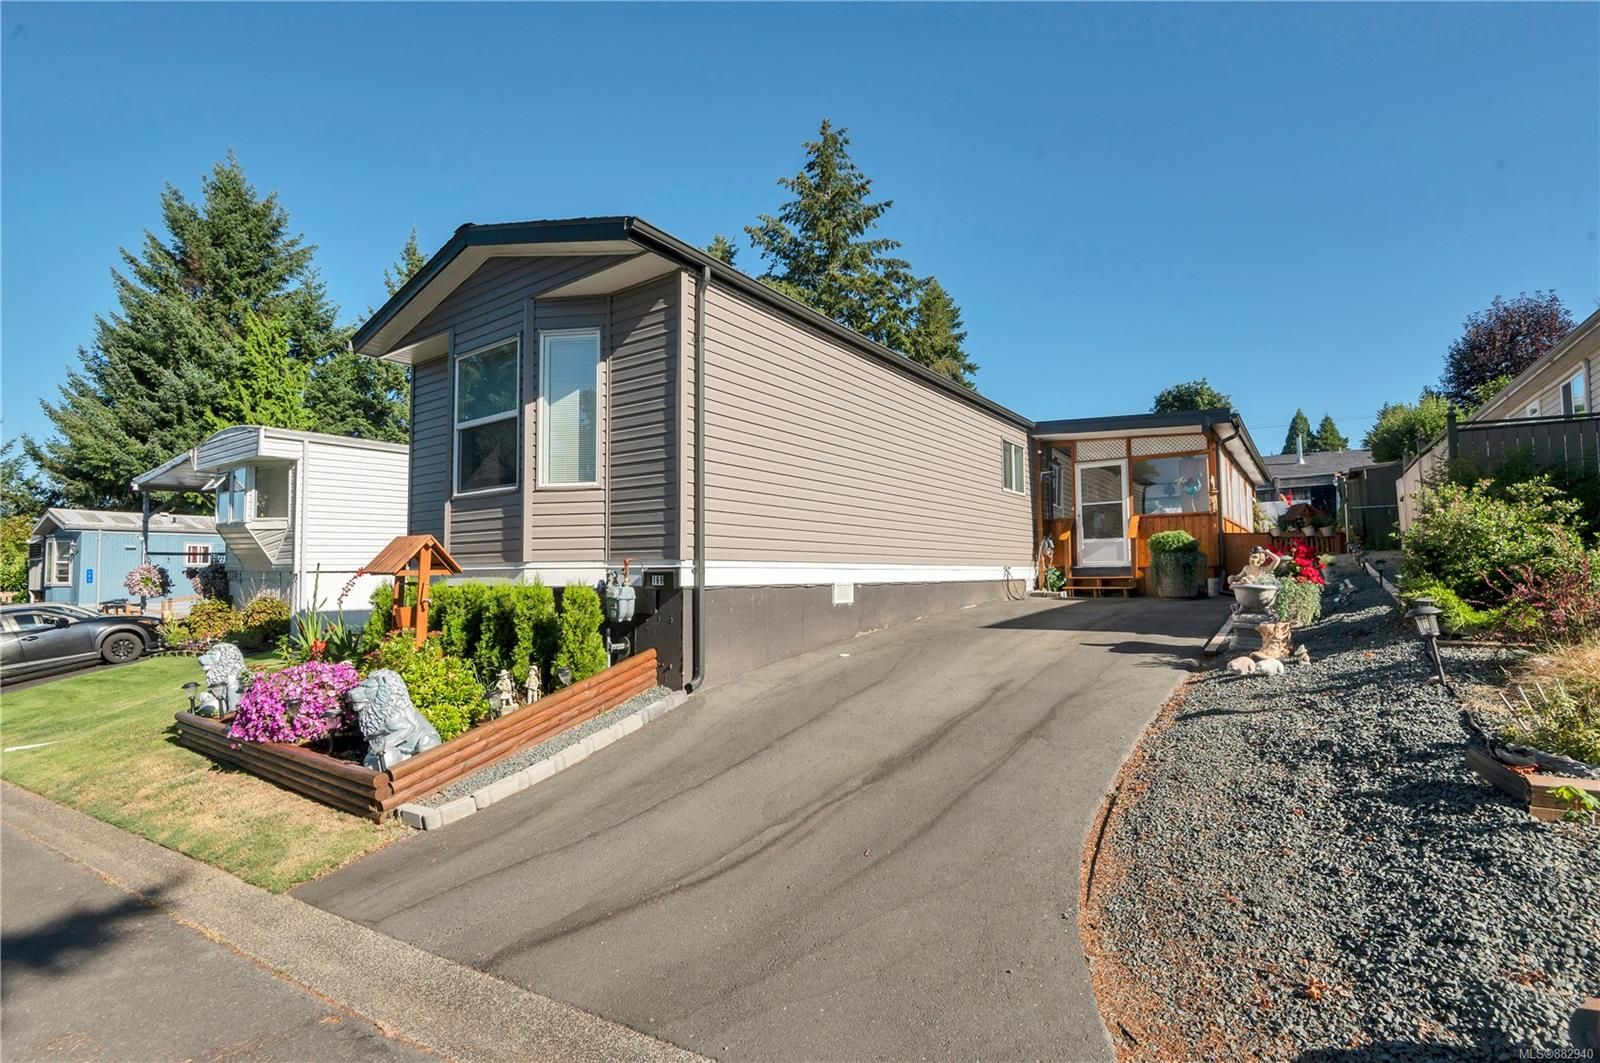 Main Photo: 169 1160 Shellbourne Blvd in : CR Campbell River Central Manufactured Home for sale (Campbell River)  : MLS®# 882940